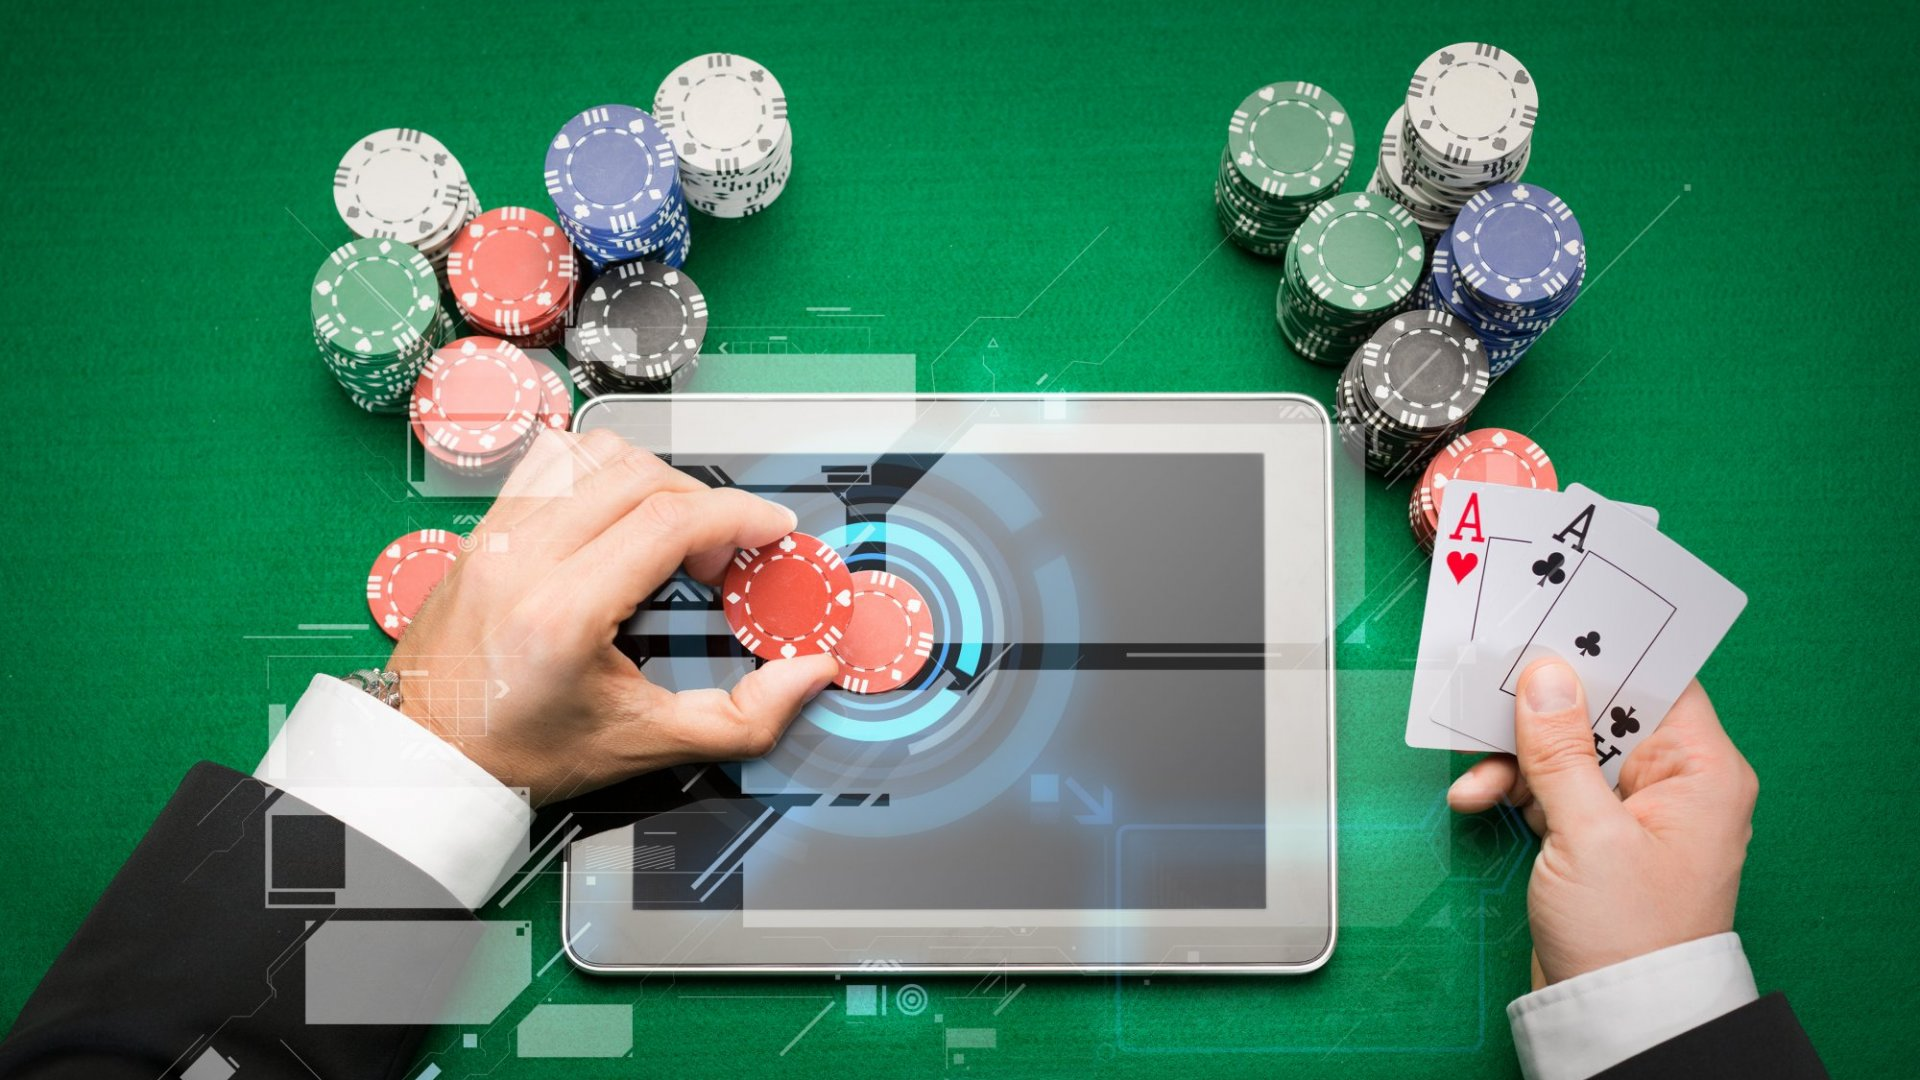 Wish To Step Up Your Gambling? It's Essential To Read This First